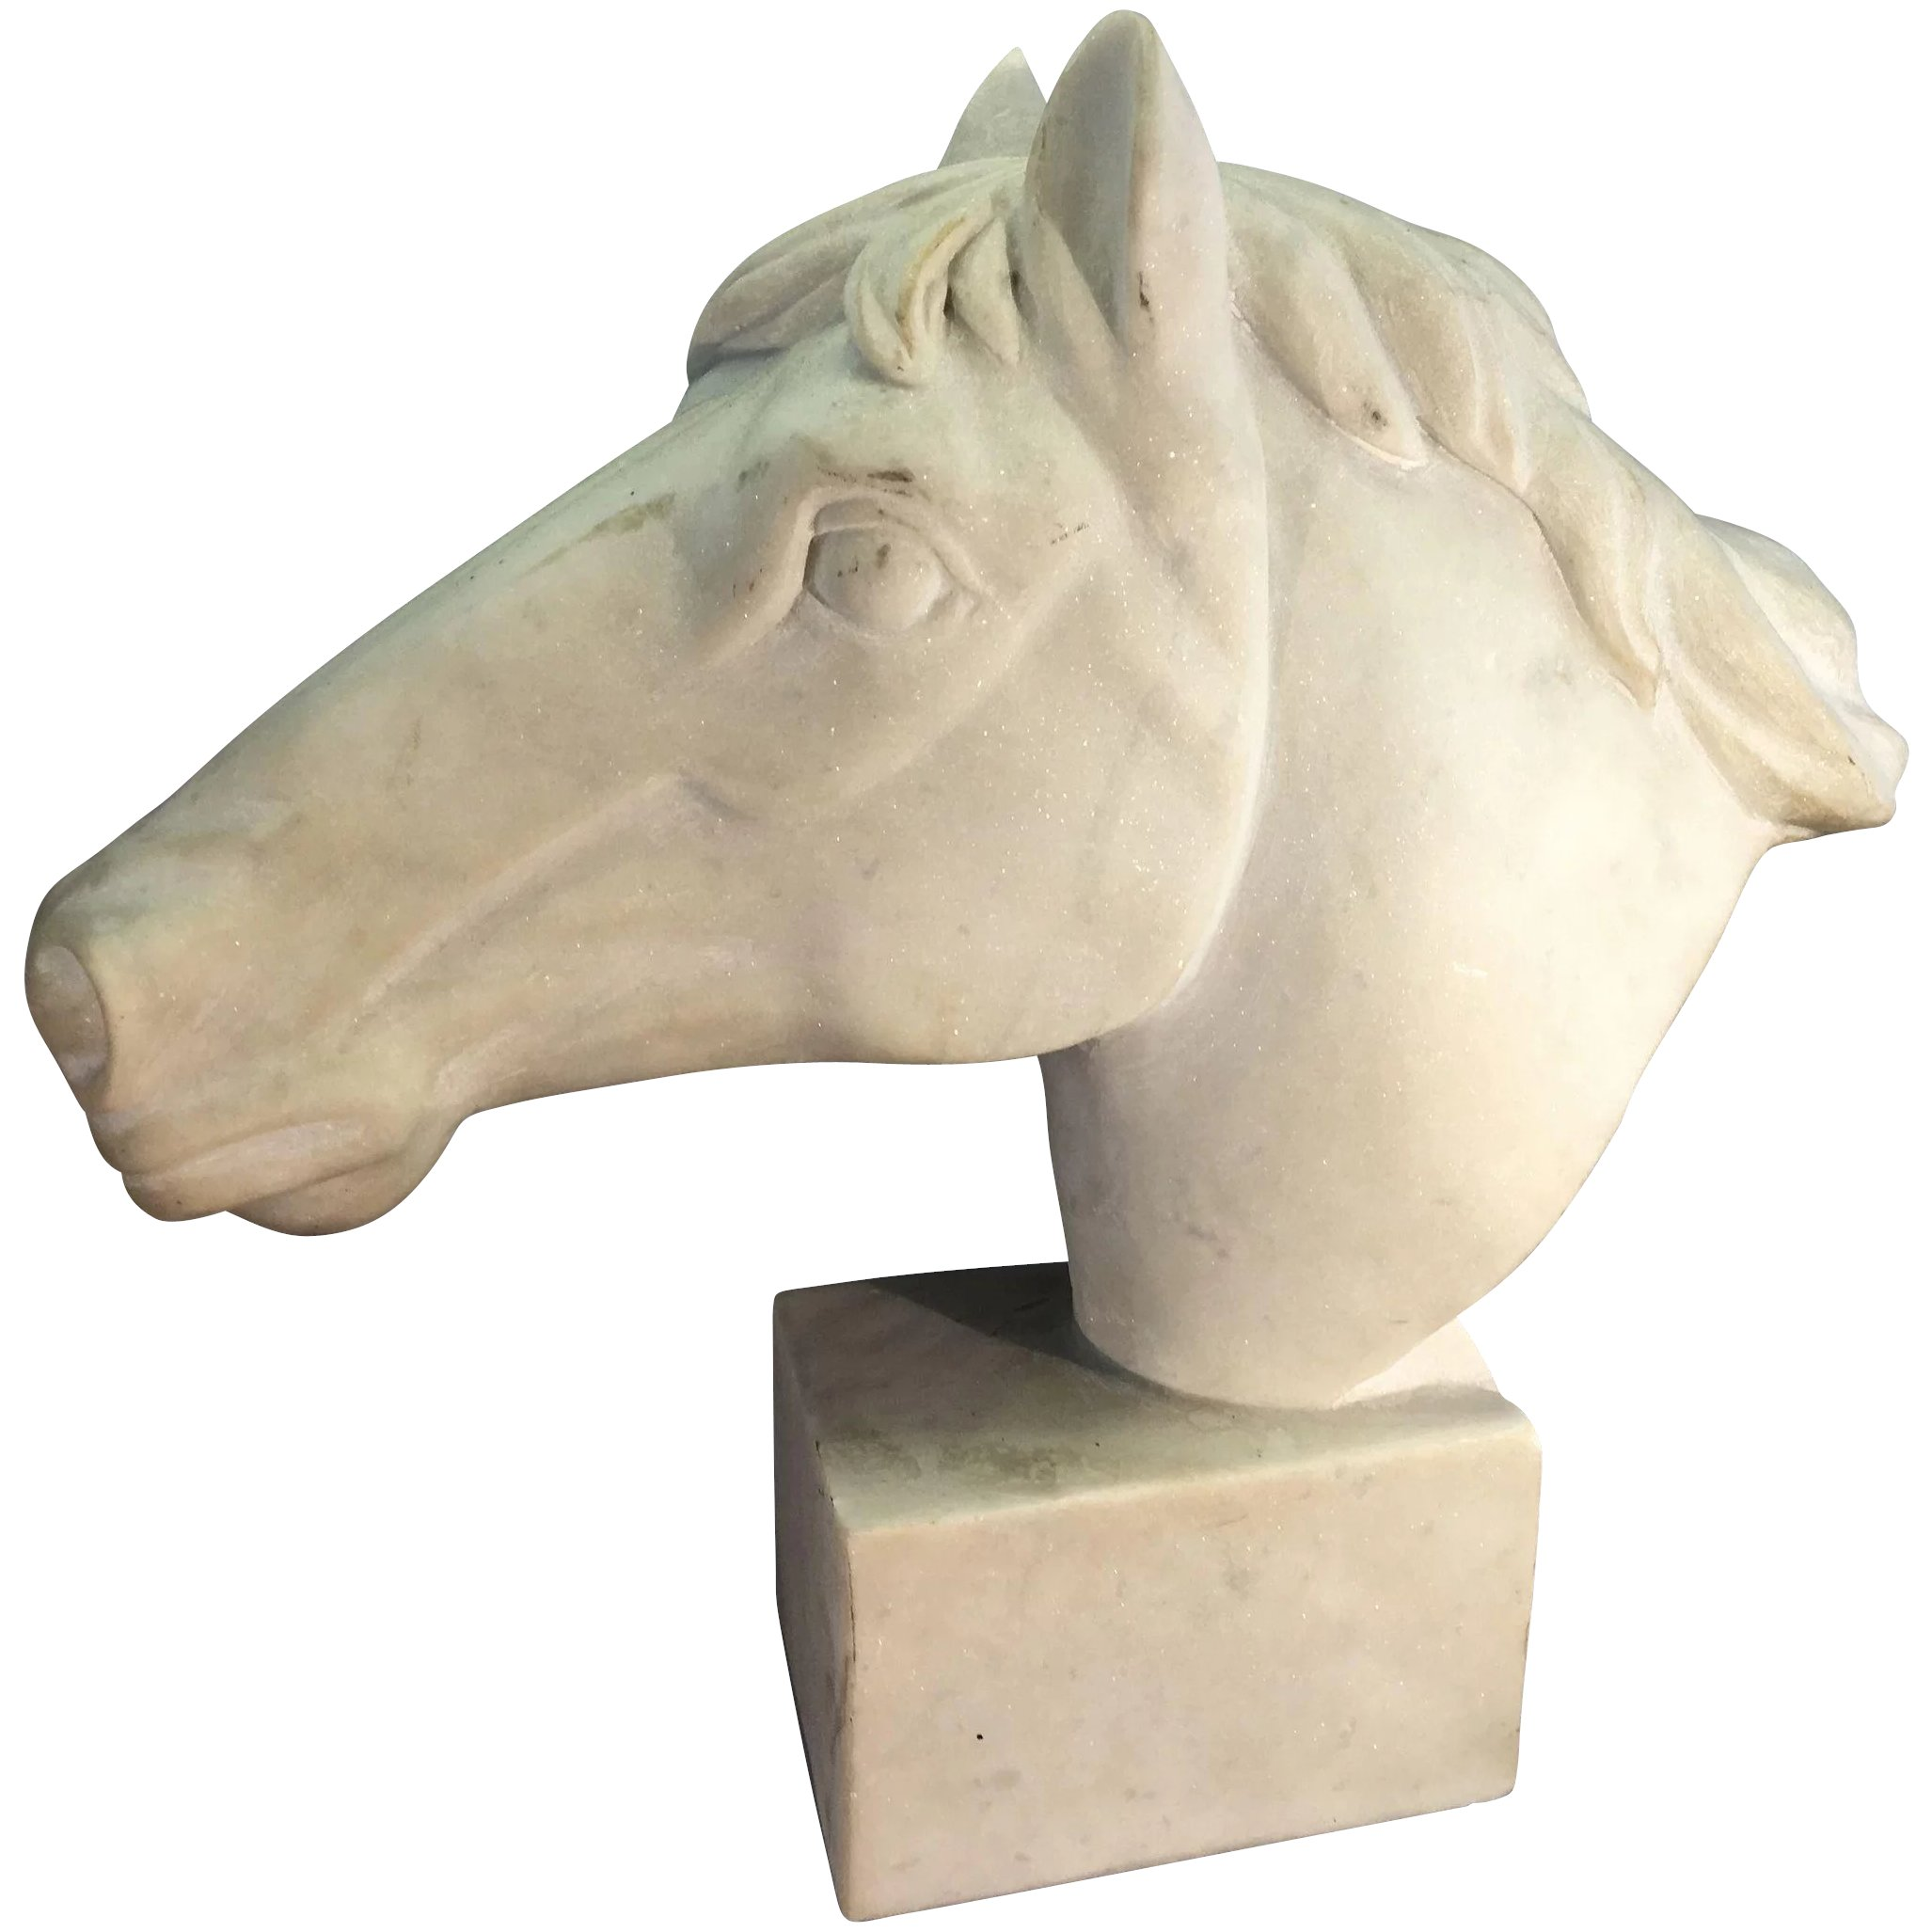 Vintage Horse Head Sculpture Bust Alabaster Or Stone Marble Statue Royal Pelican Antiques Ruby Lane